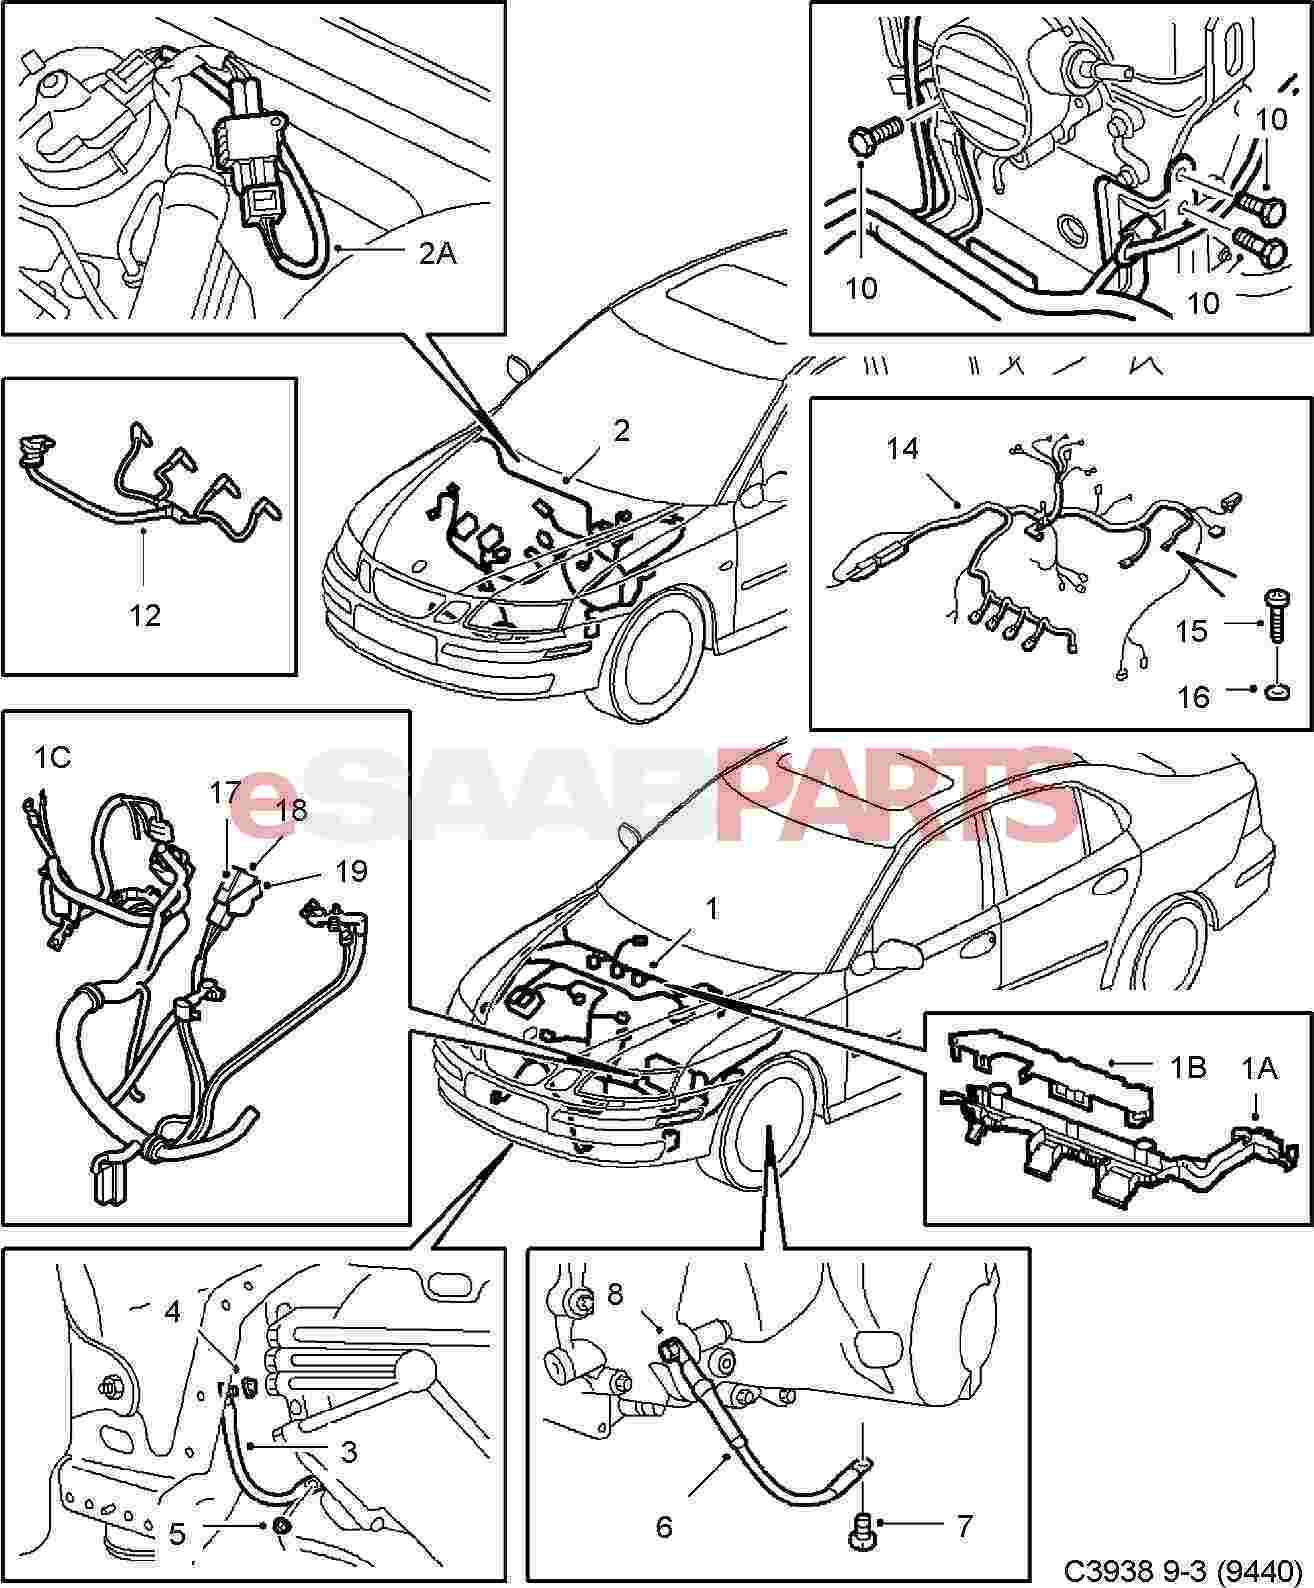 esaabparts com saab 9 3 (9440) \u003e electrical parts \u003e wiring harnessesaabparts com saab 9 3 (9440) \u003e electrical parts \u003e wiring harness engine transmission \u003e motor, transmission